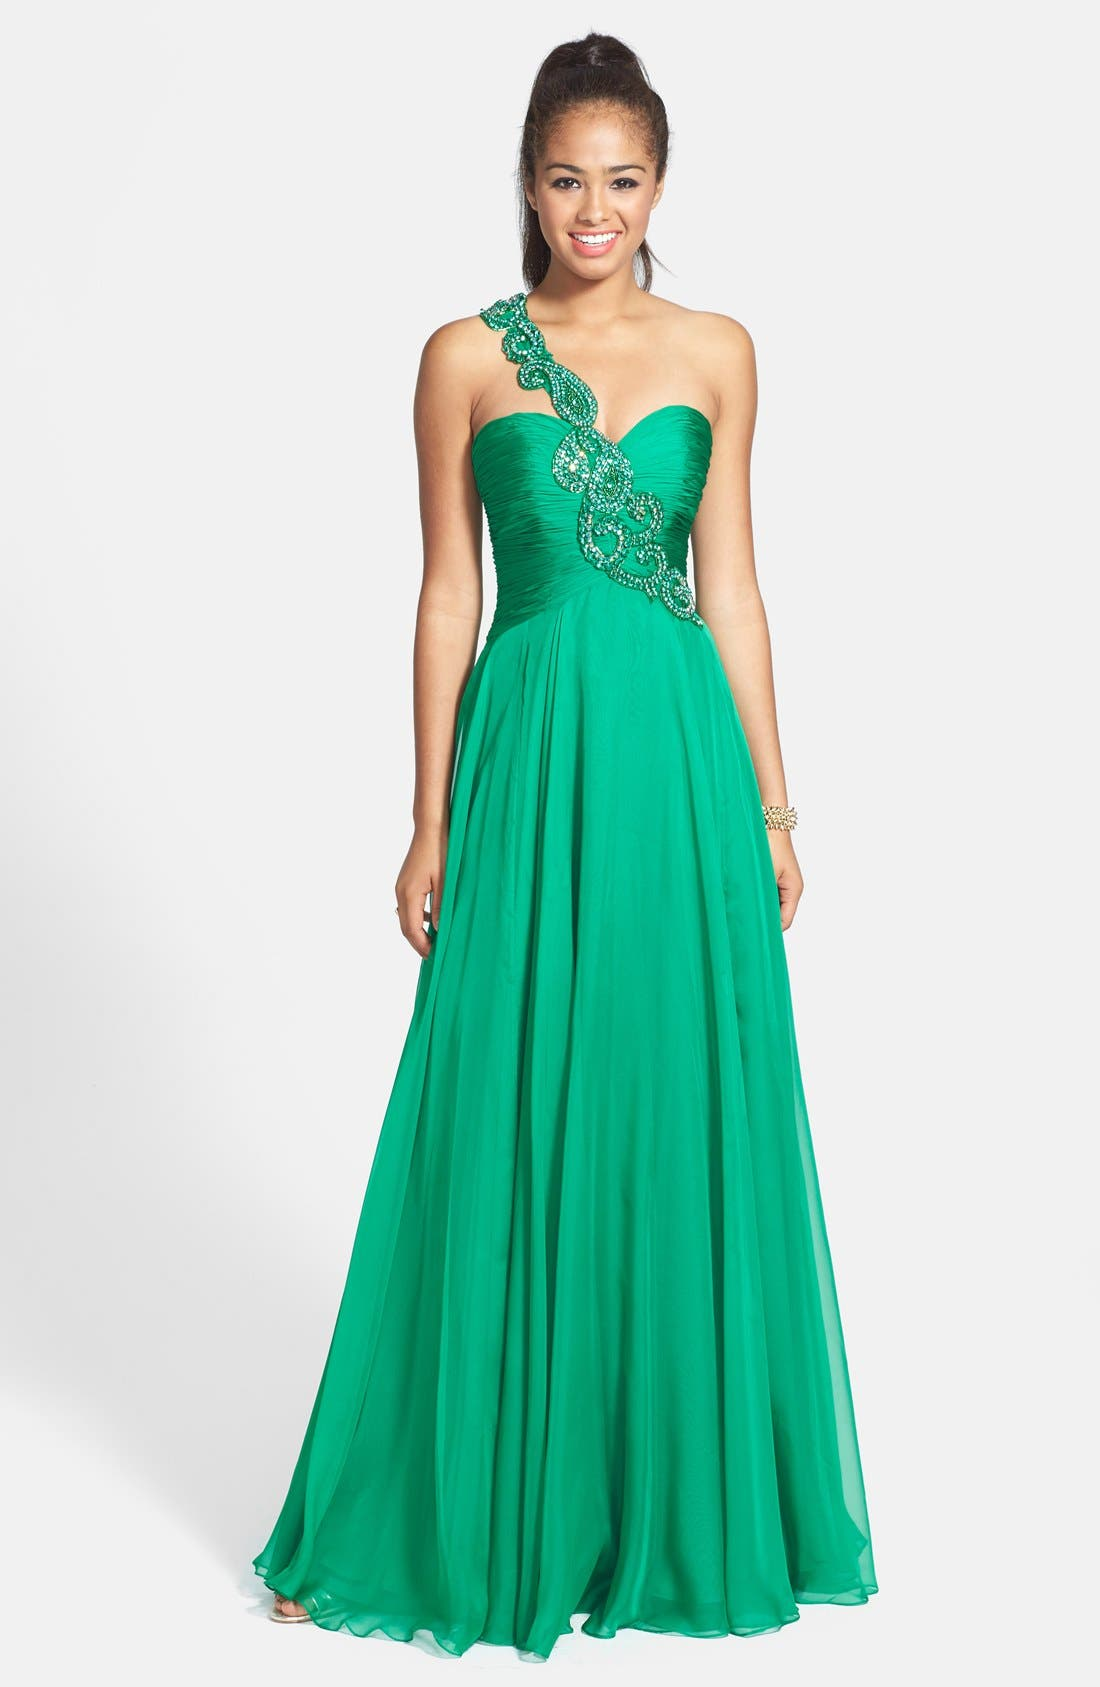 Alternate Image 1 Selected - Sherri Hill One Shoulder Embellished Chiffon Gown